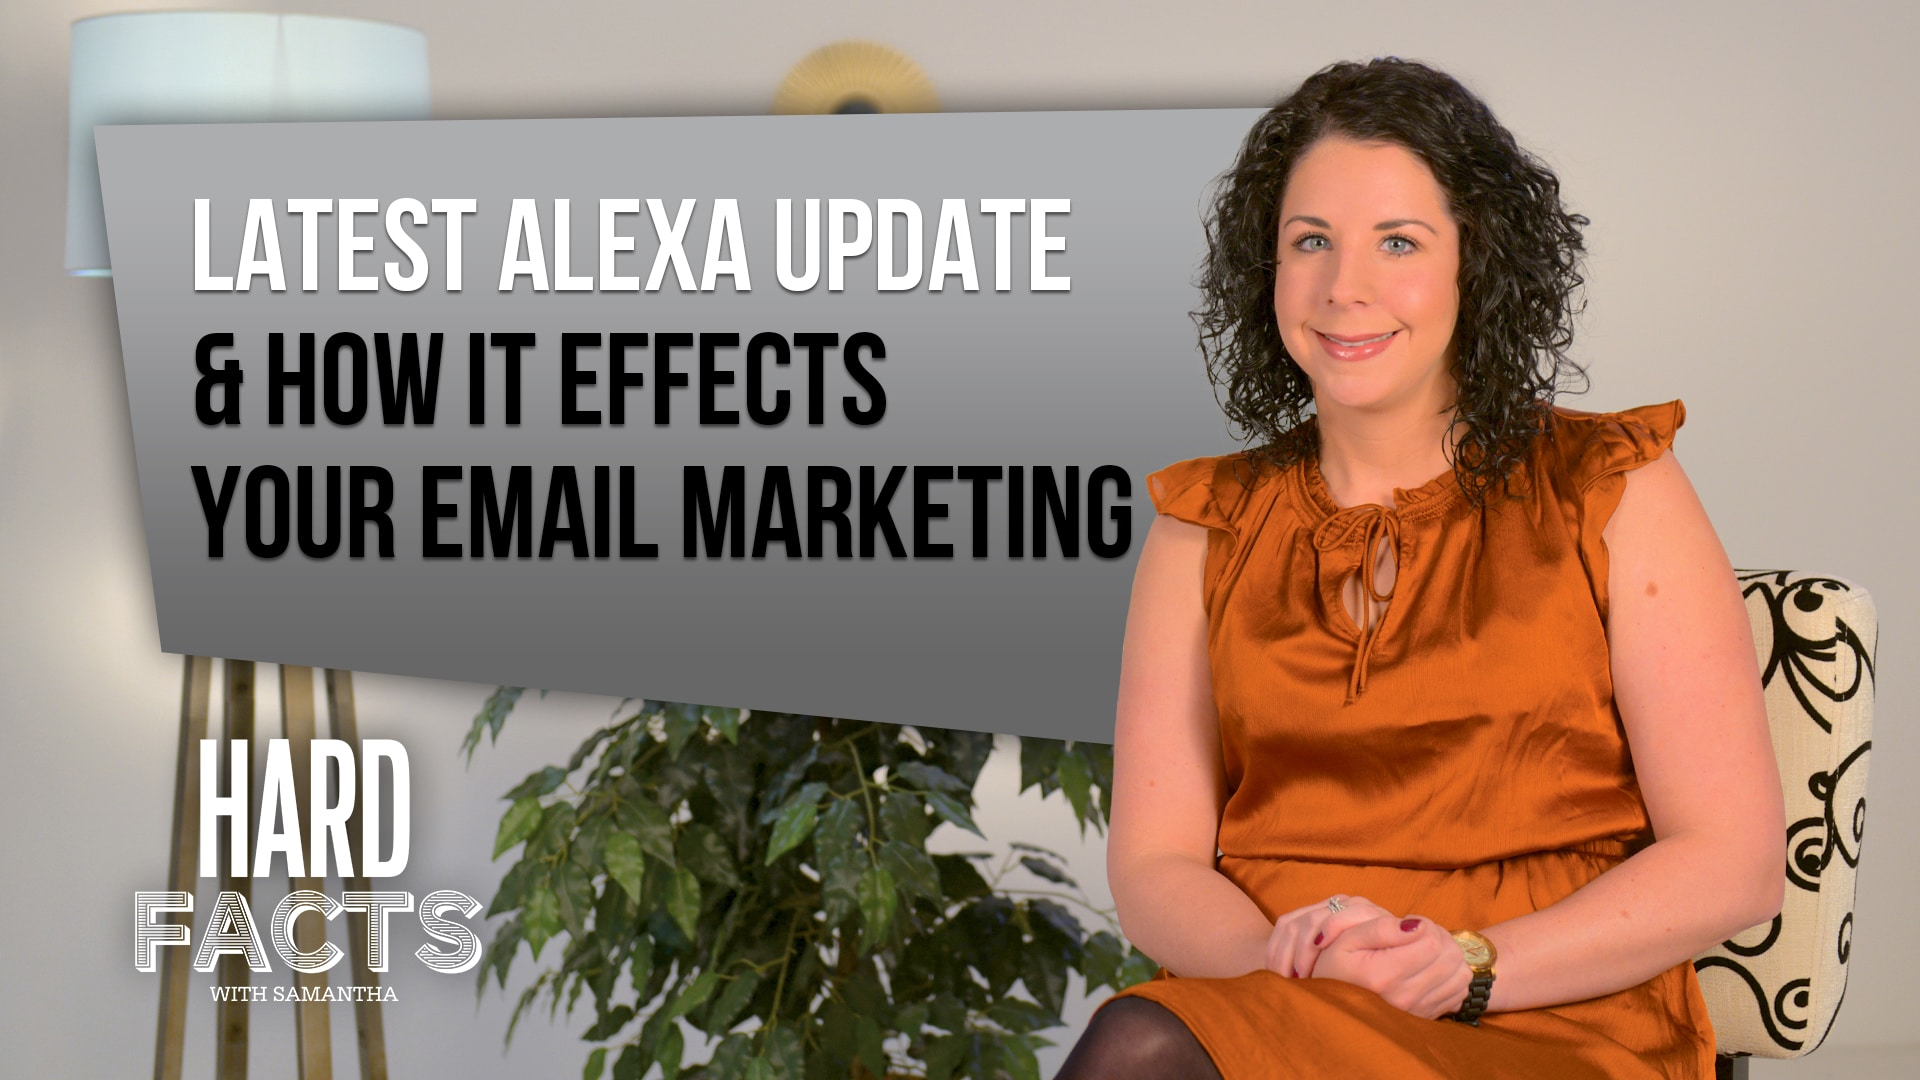 Latest Alexa Update & How It Effects Your Email Marketing